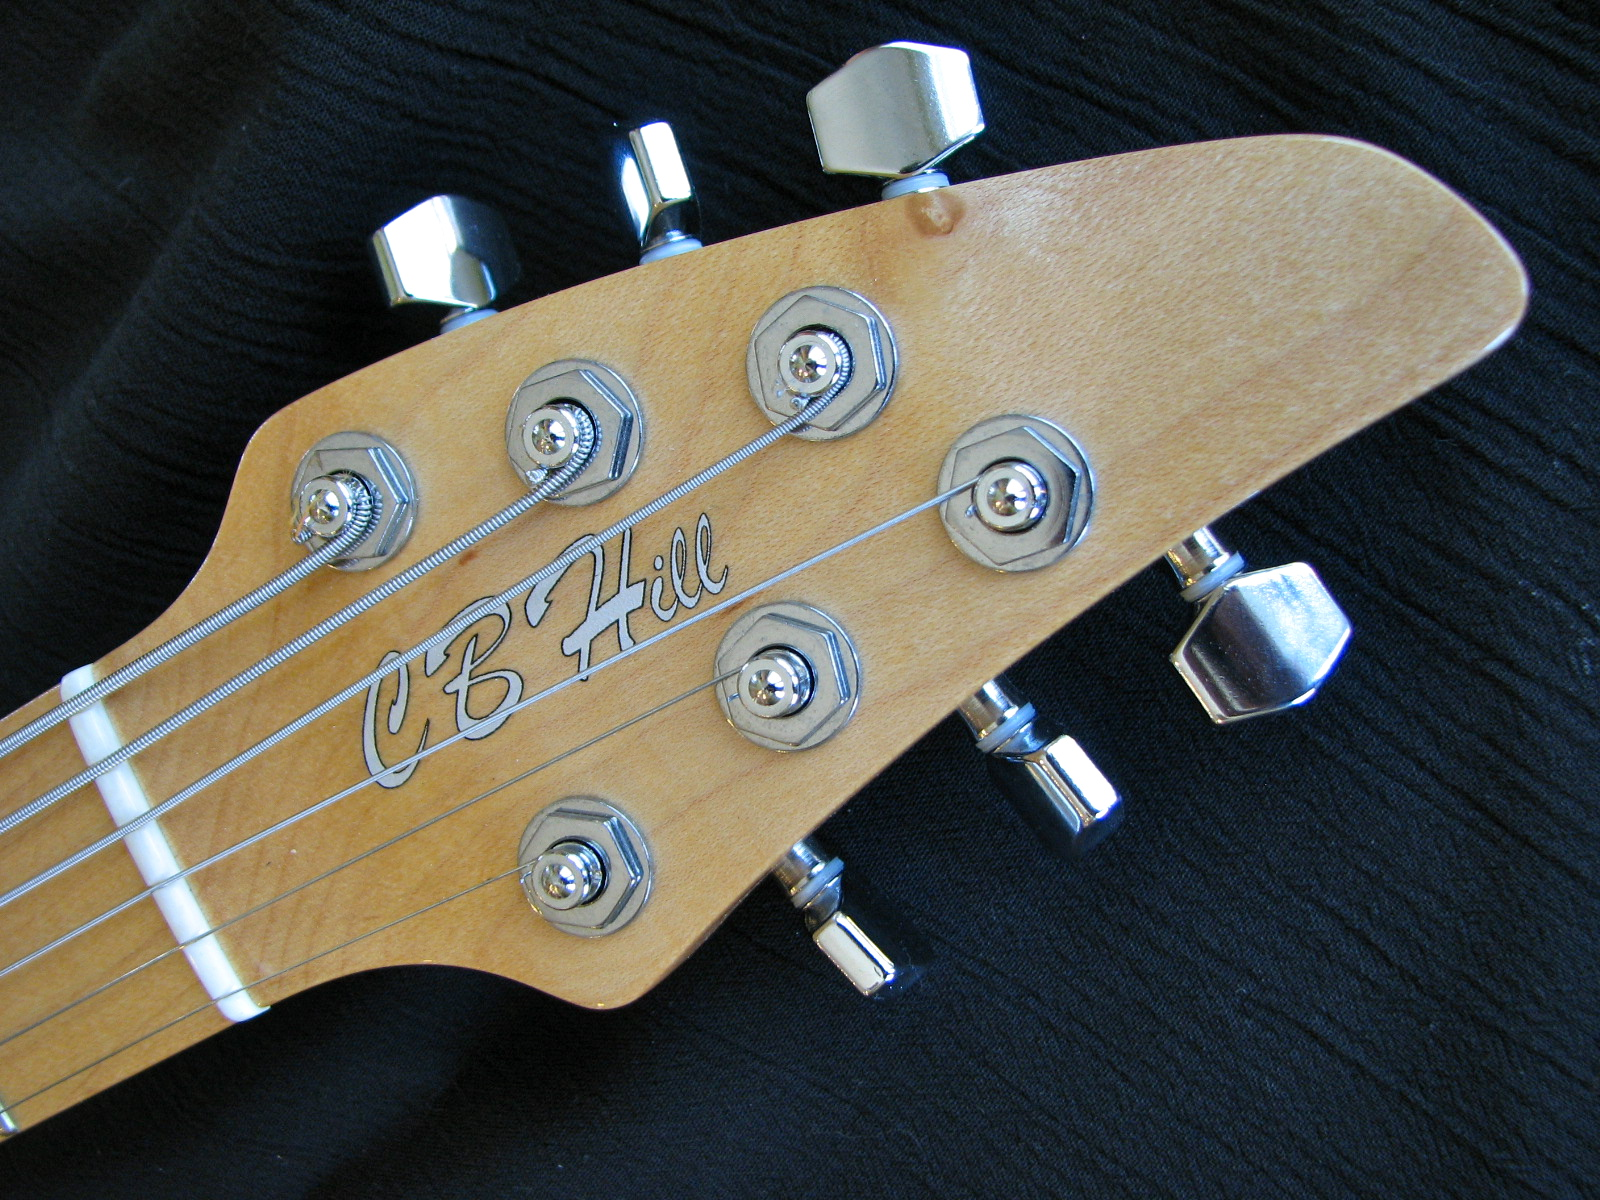 The paintbrush headstock puts the Sperzel locking tuners in the optimal positions